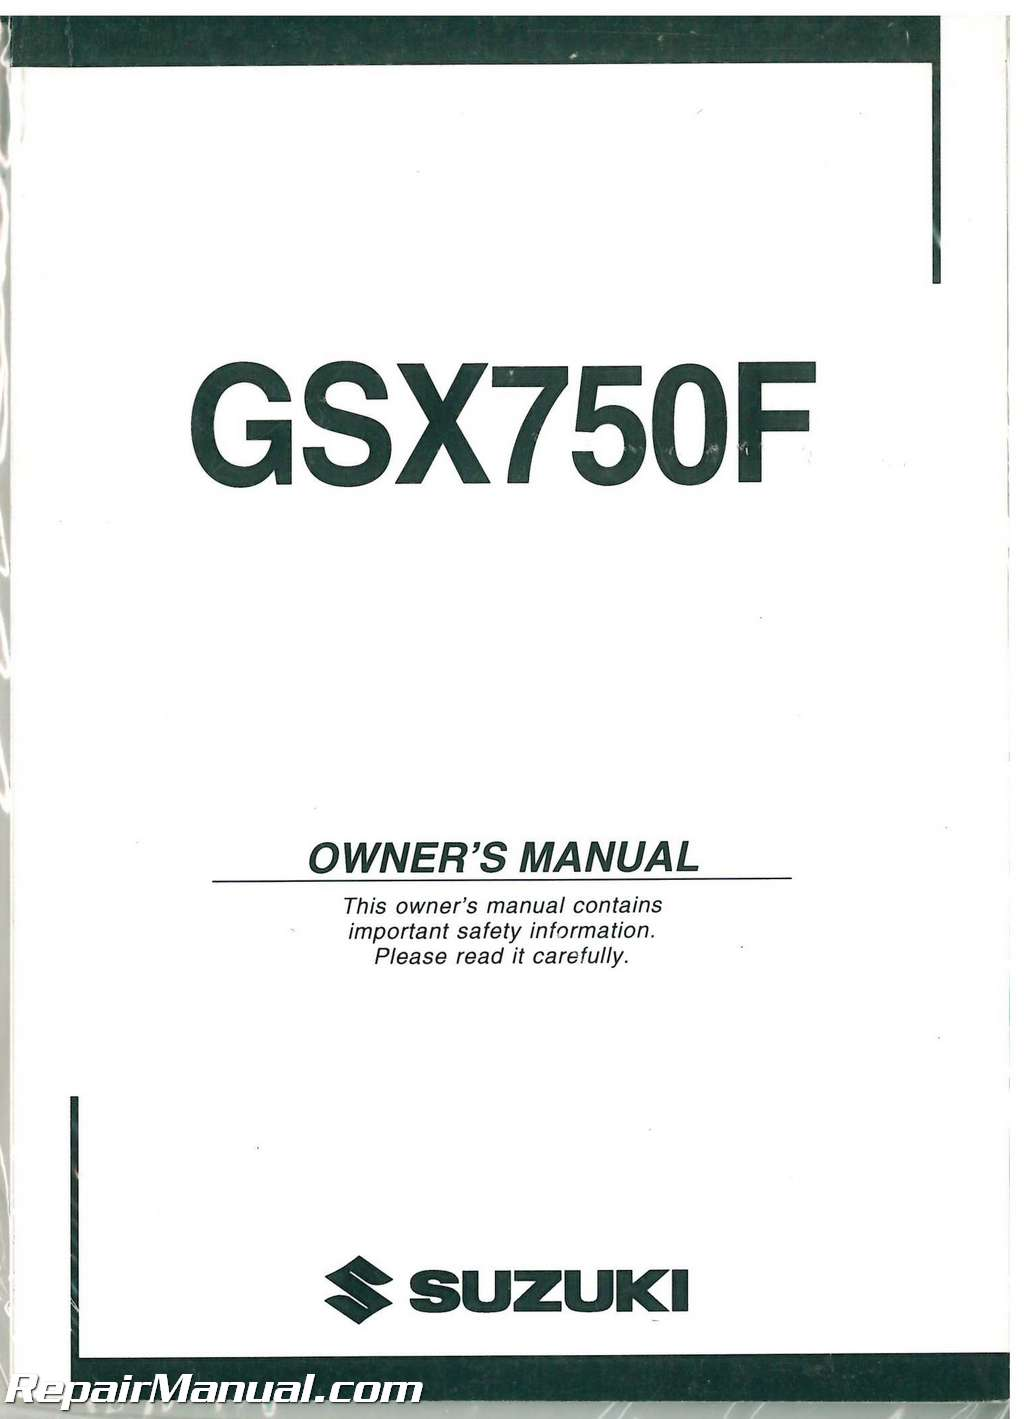 Suzuki Gsx750f Manual Free